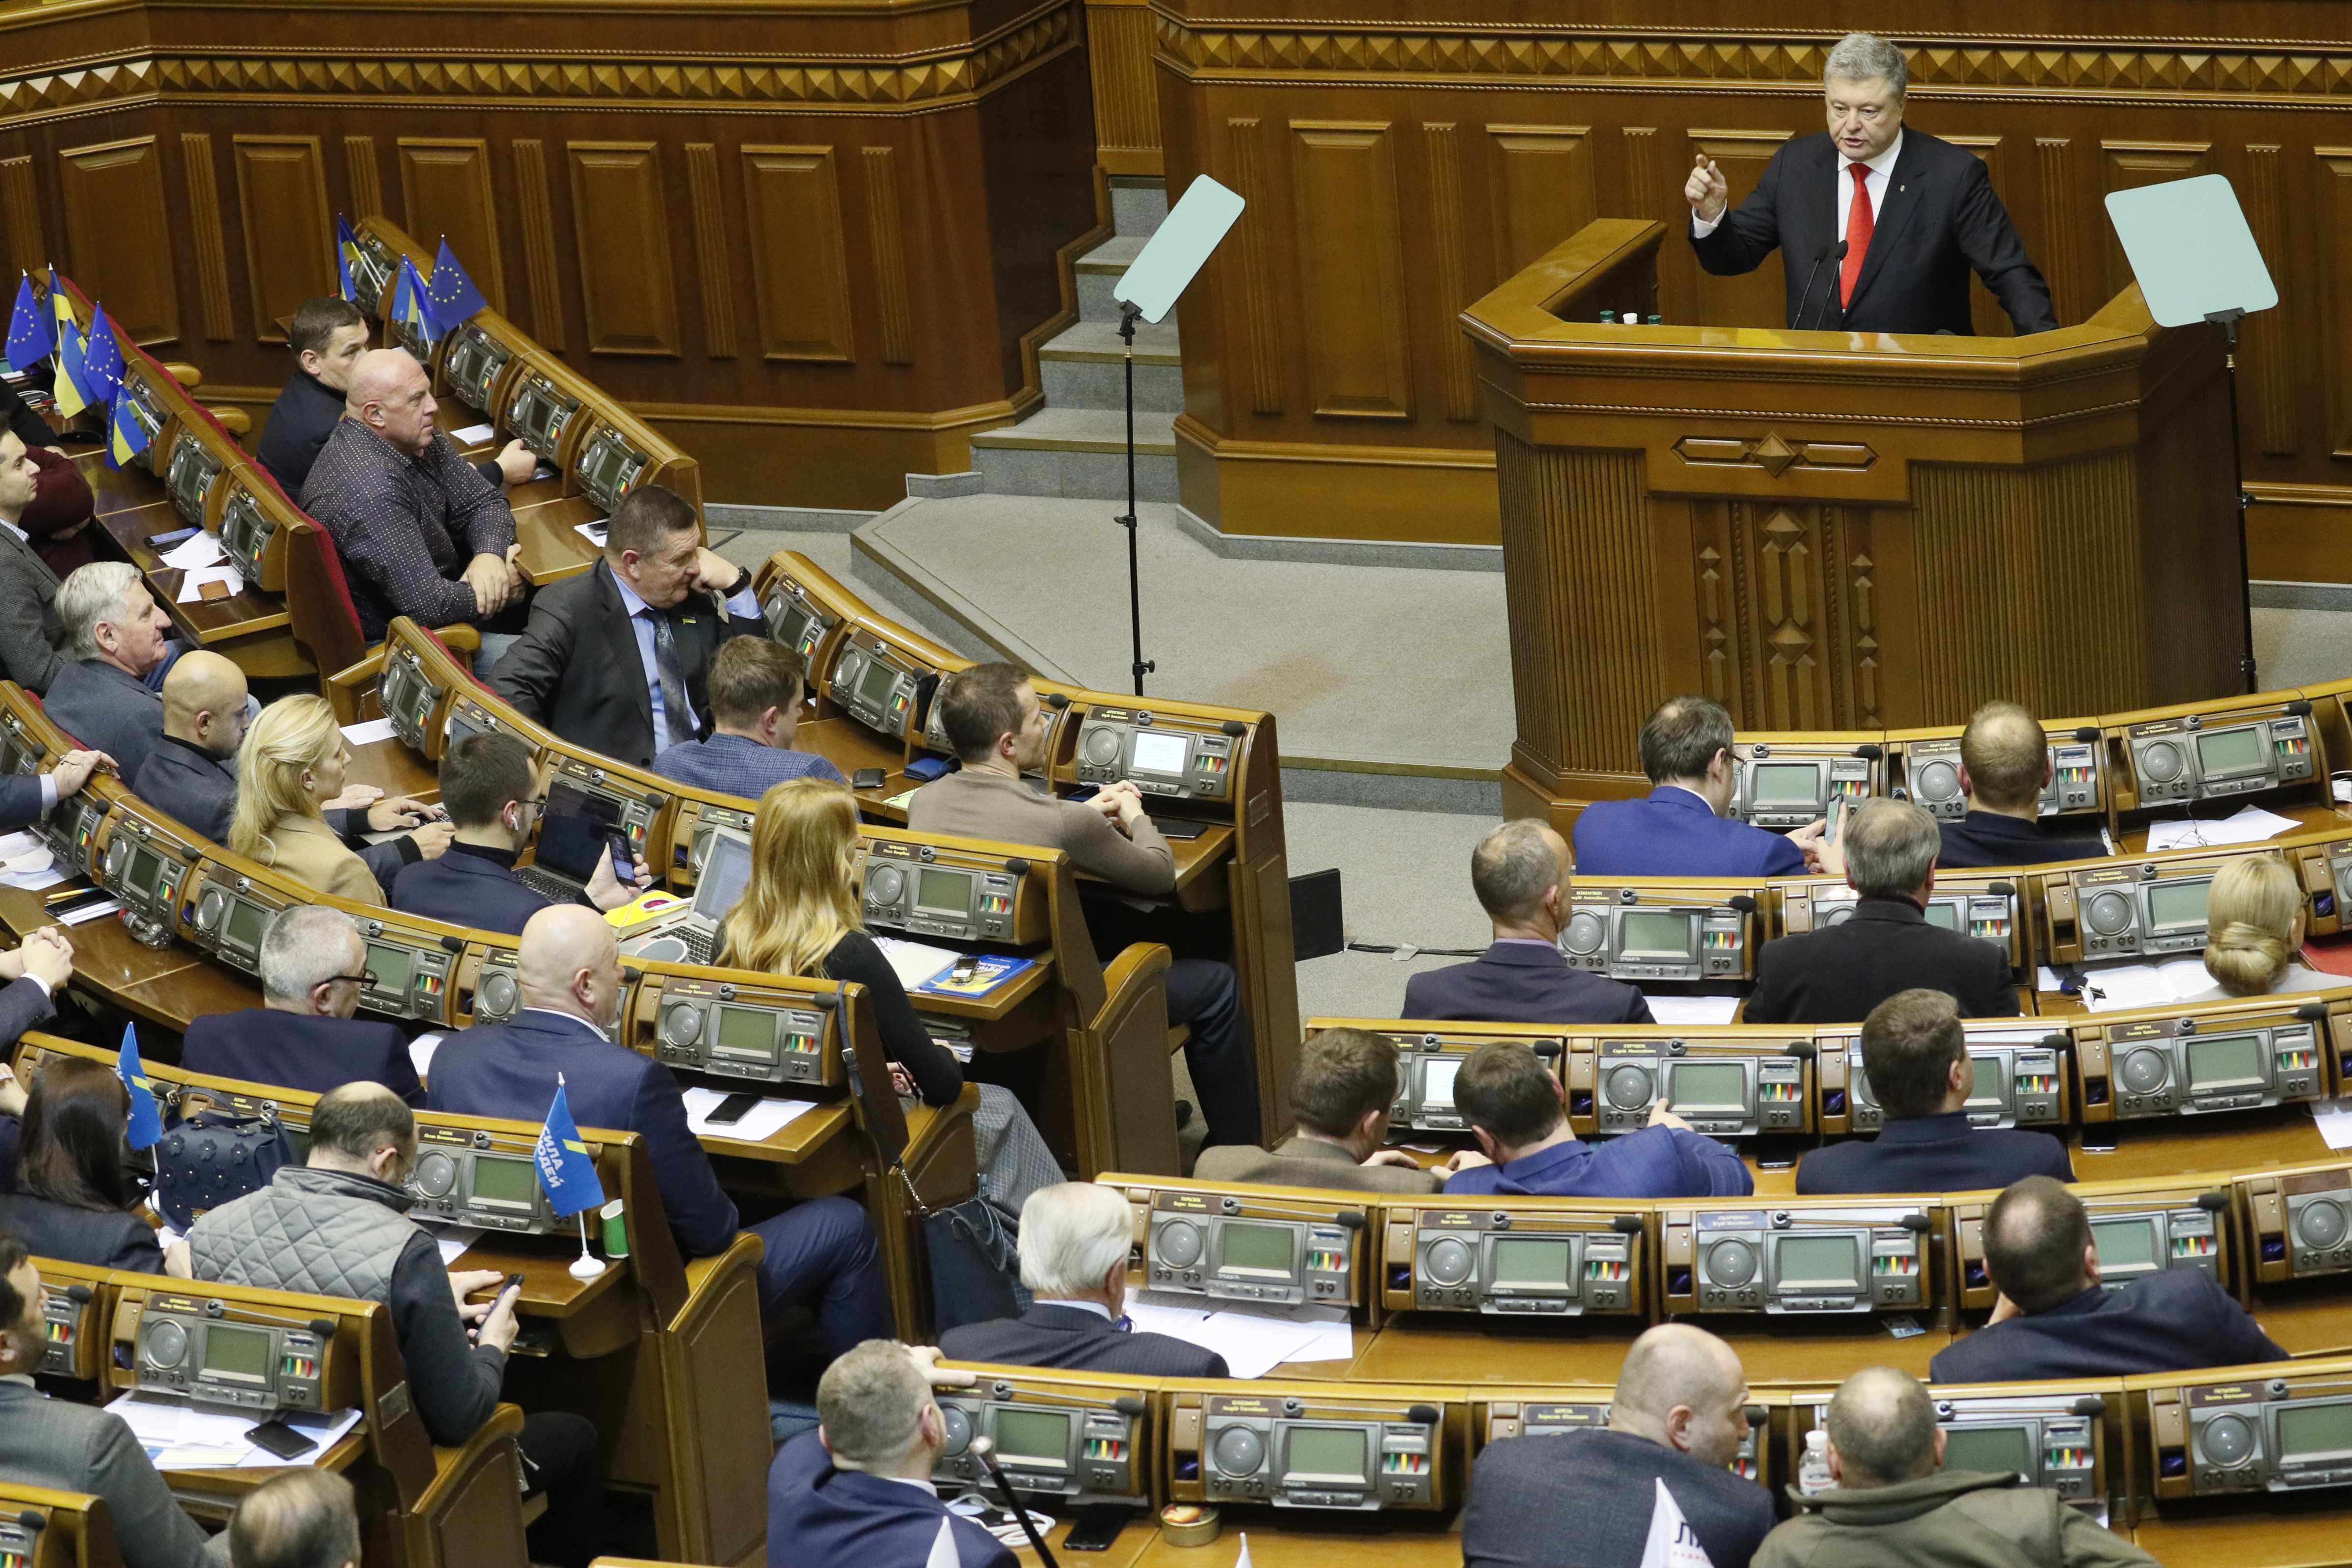 Ukrainian President Petro Poroshenko speaks during a parliament session to review his proposal to introduce martial law for 60 days after Russia seized Ukrainian naval ships off the coast of Russia-annexed Crimea, in Kiev, Ukraine November 26, 2018. REUTERS/Valentyn Ogirenko